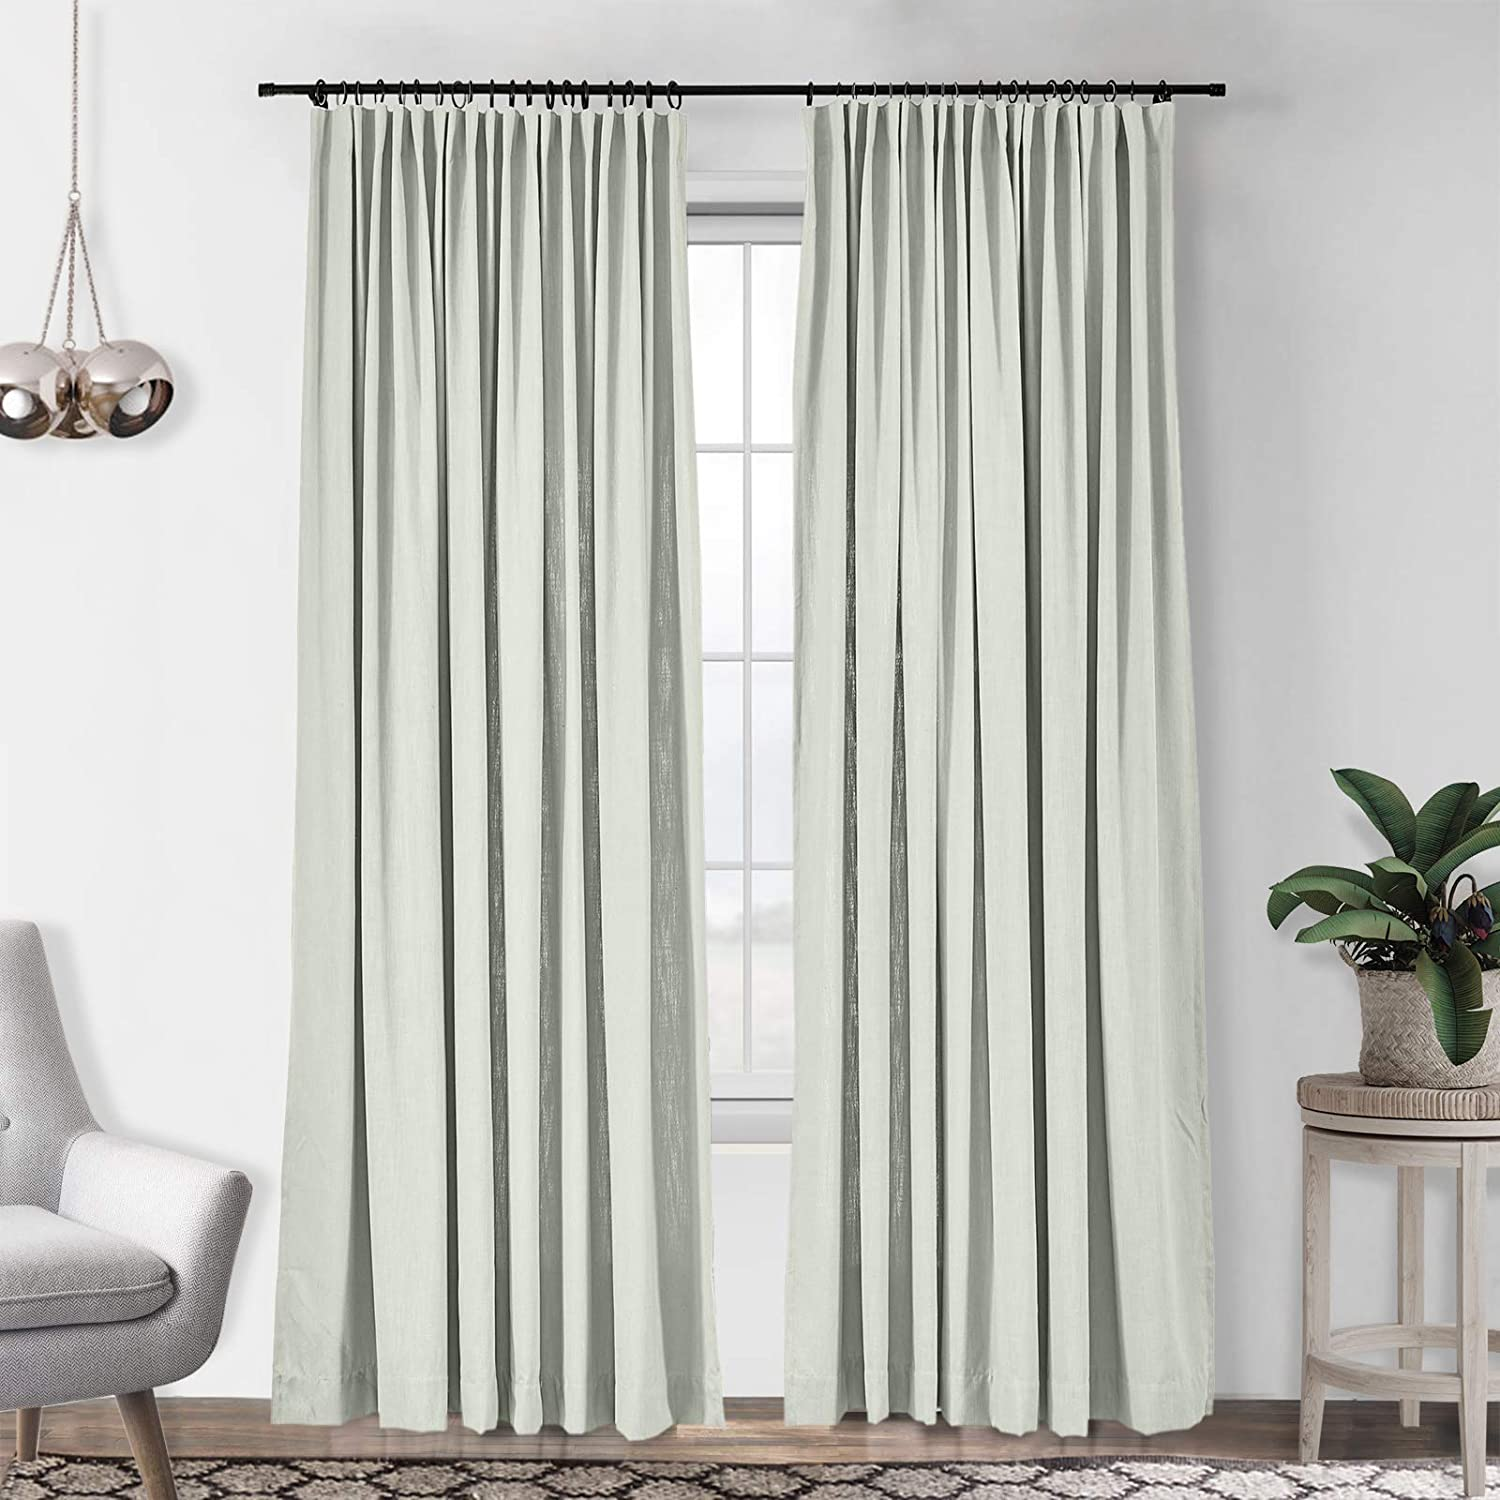 Free Shipping Cheap Bargain Gift Ranking TOP11 Drapifytex Faux Linen and Cotton Bedroom Darkening Room Curtain